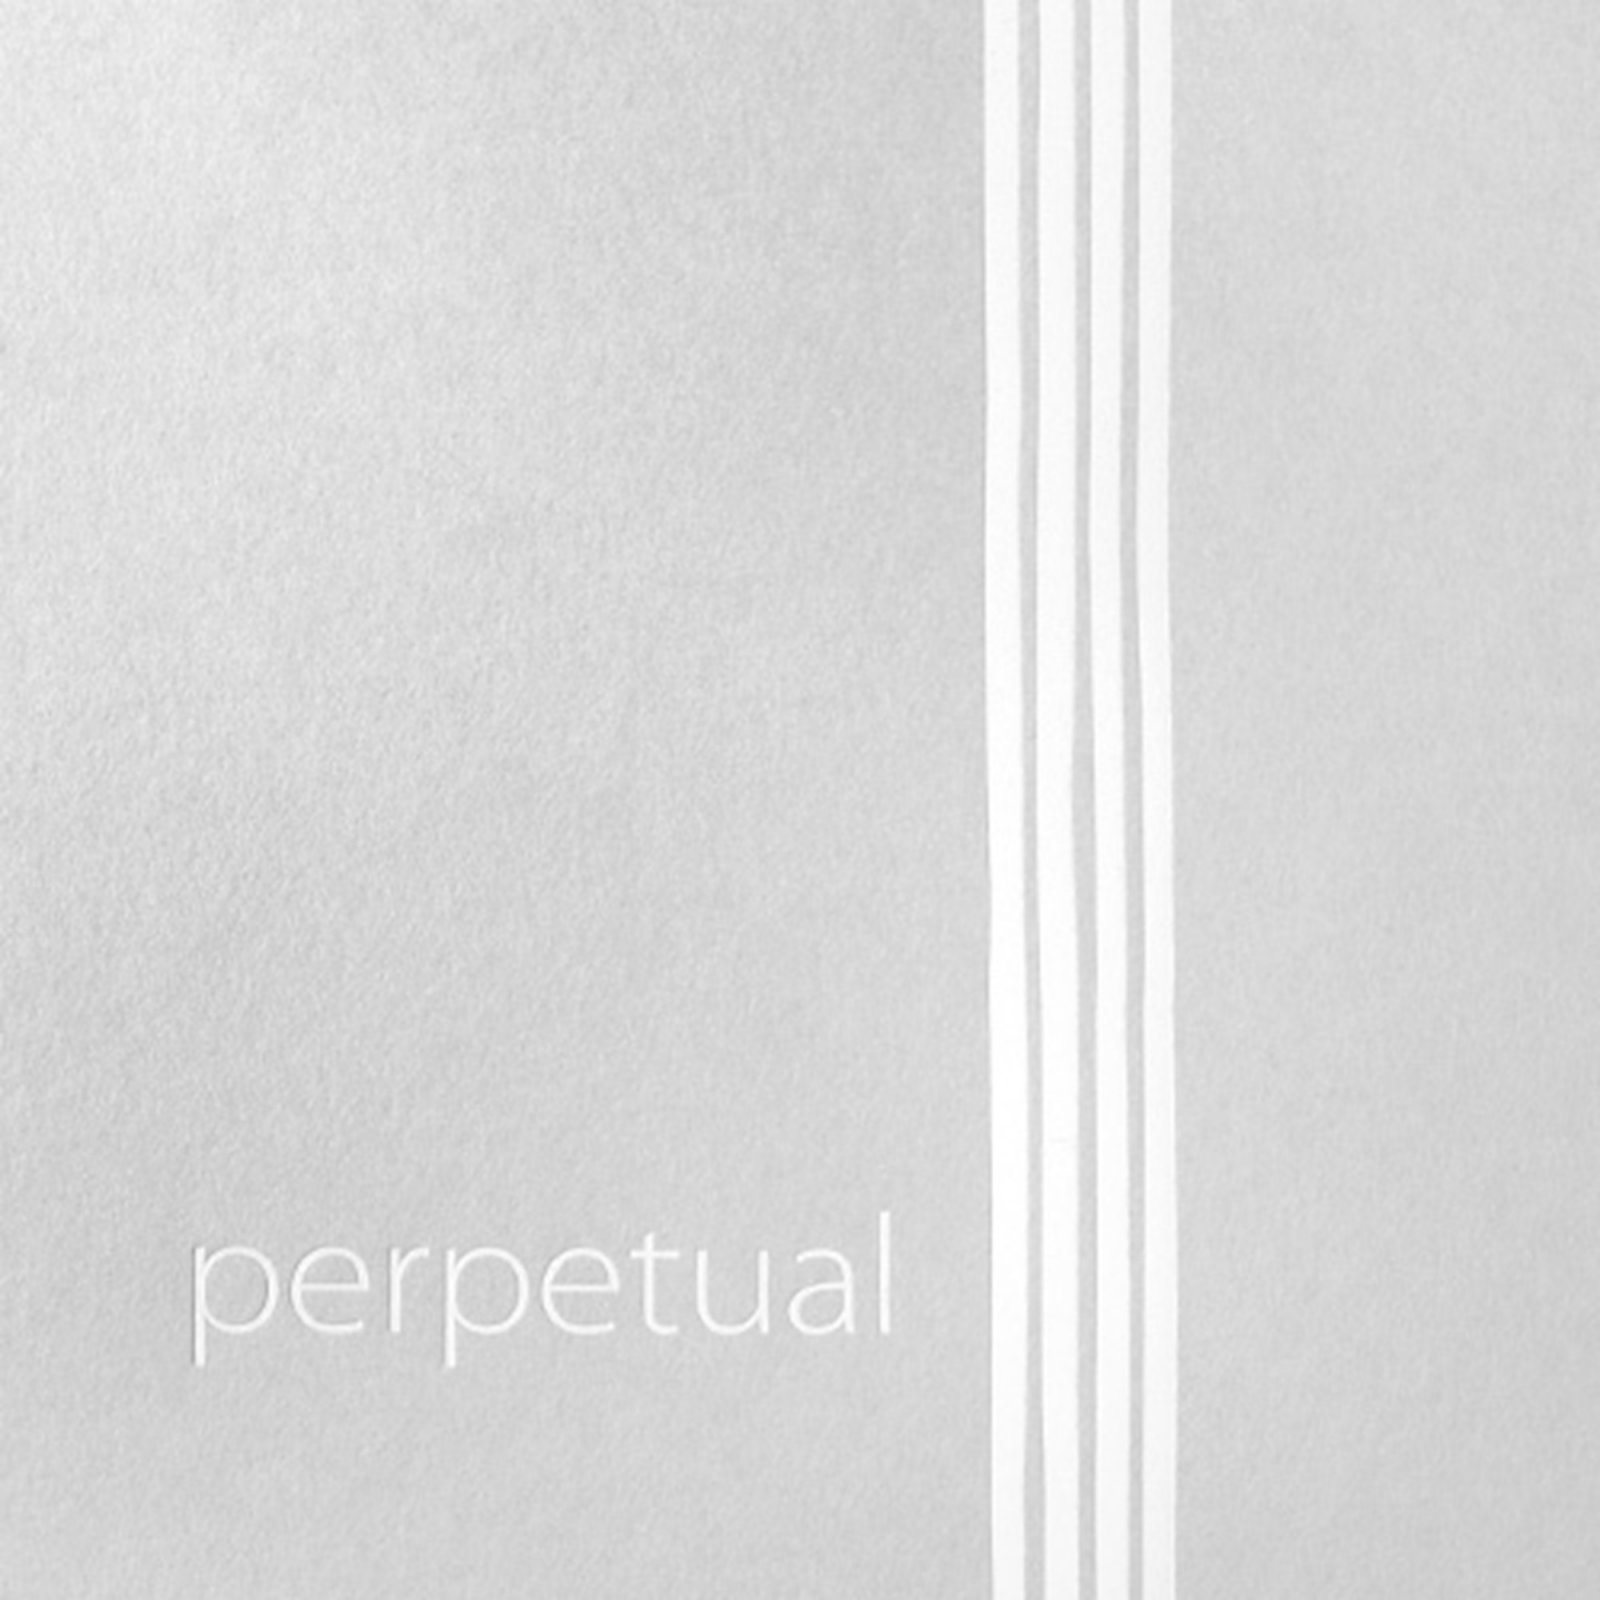 Perpetual Cello D